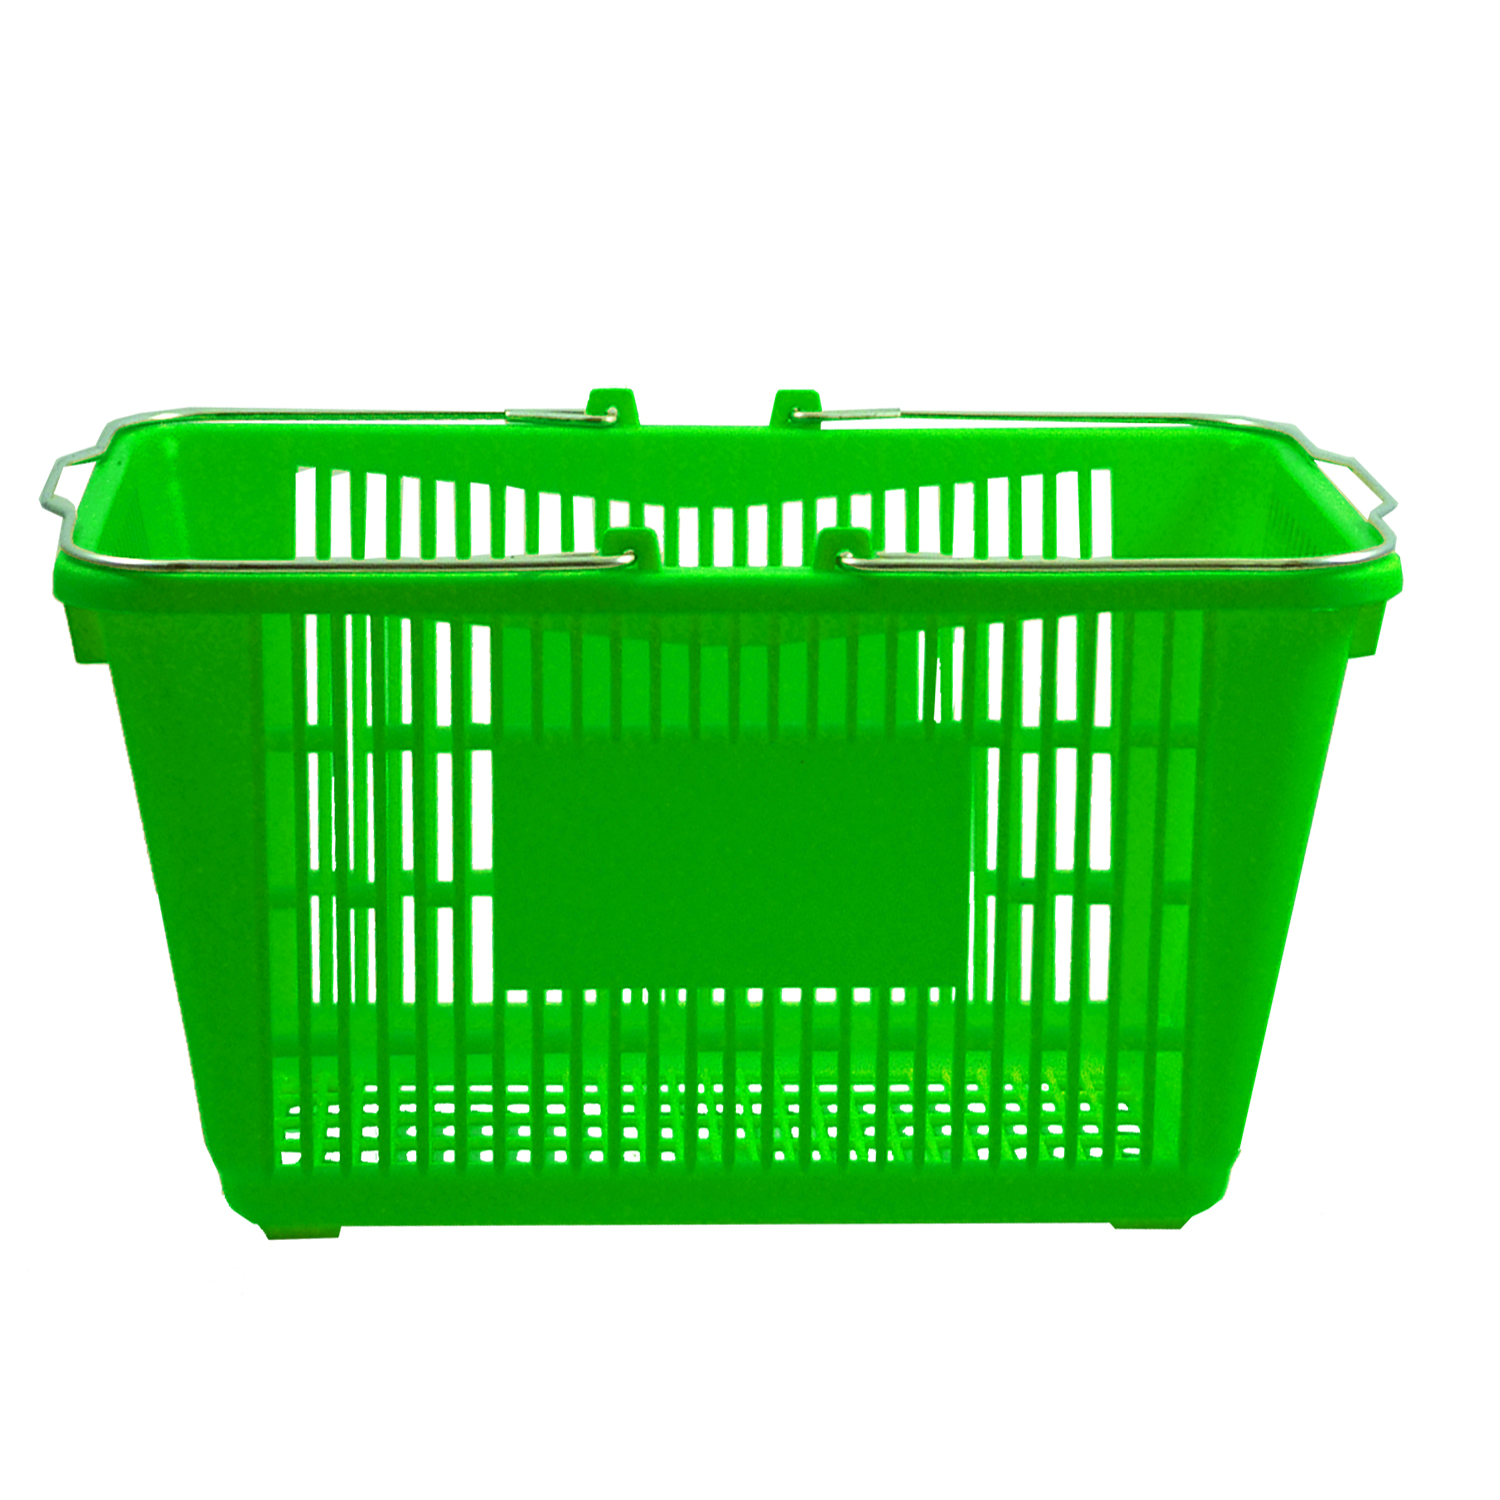 Regular Baskets, Green (set of 16)